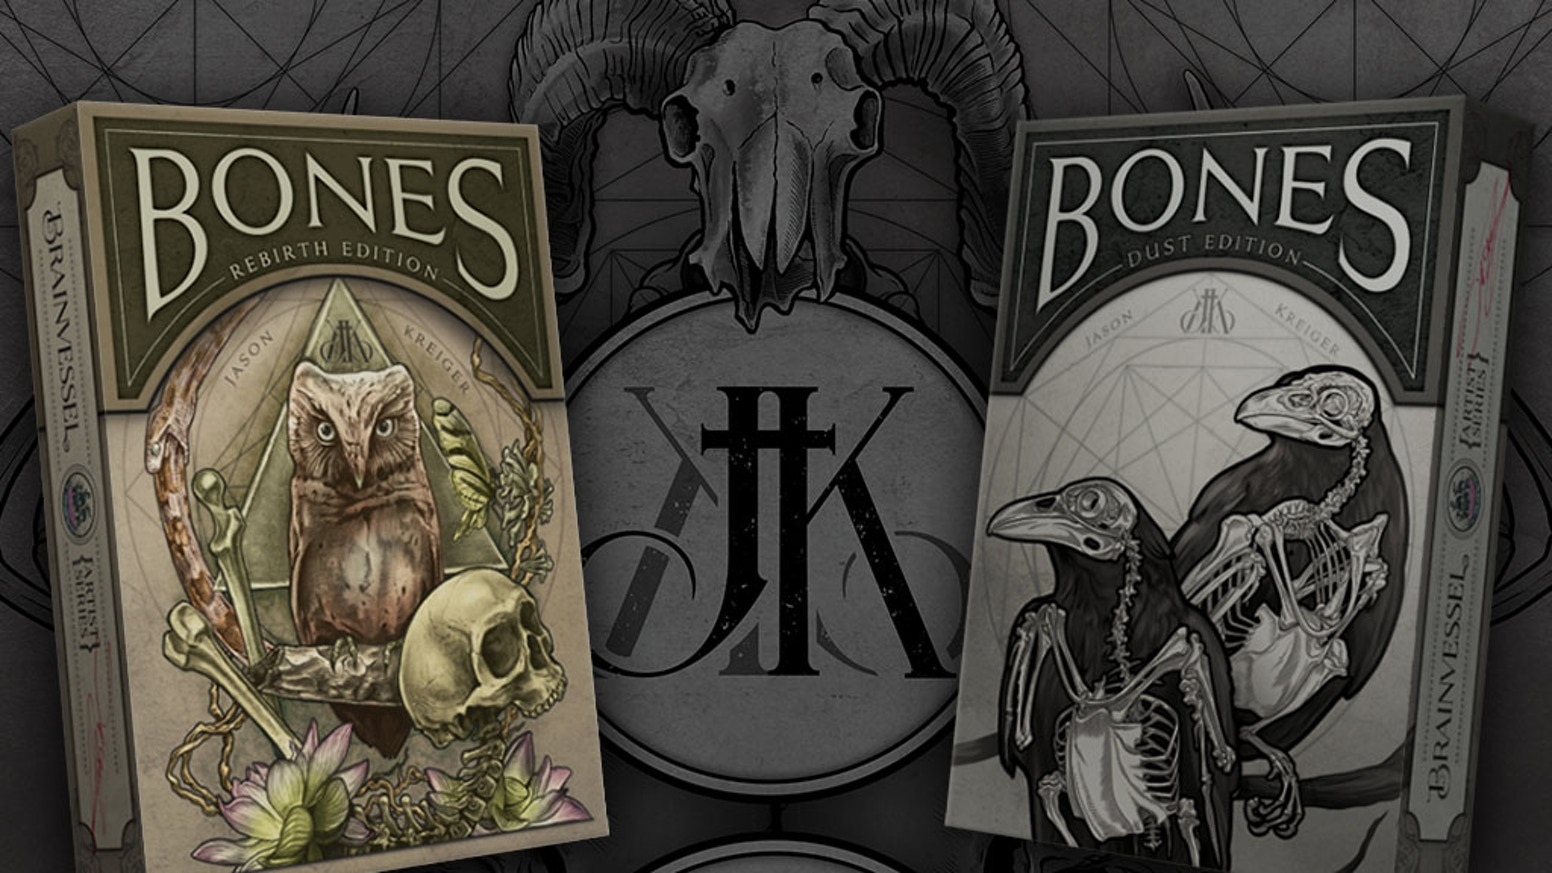 'Bones' is the first of Brain Vessel's Artist Series Playing Cards featuring the dark and naturalistic art of Jason Kreiger.